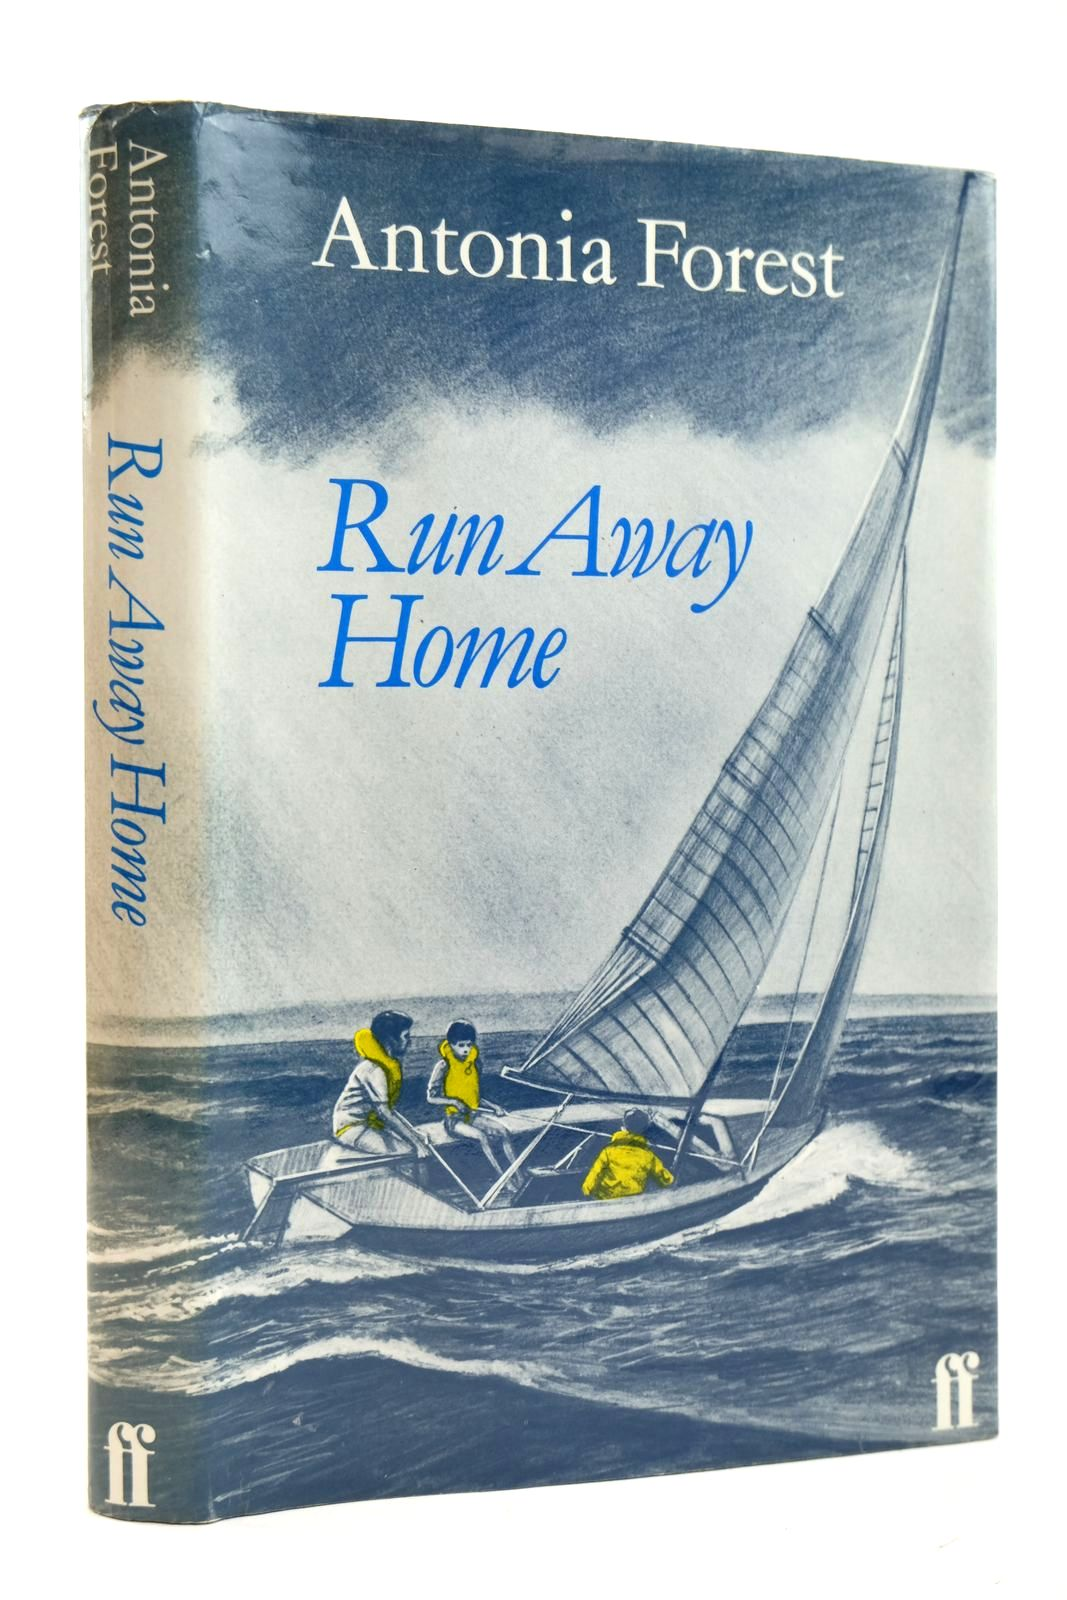 Photo of RUN AWAY HOME written by Forest, Antonia published by Faber & Faber (STOCK CODE: 2131856)  for sale by Stella & Rose's Books